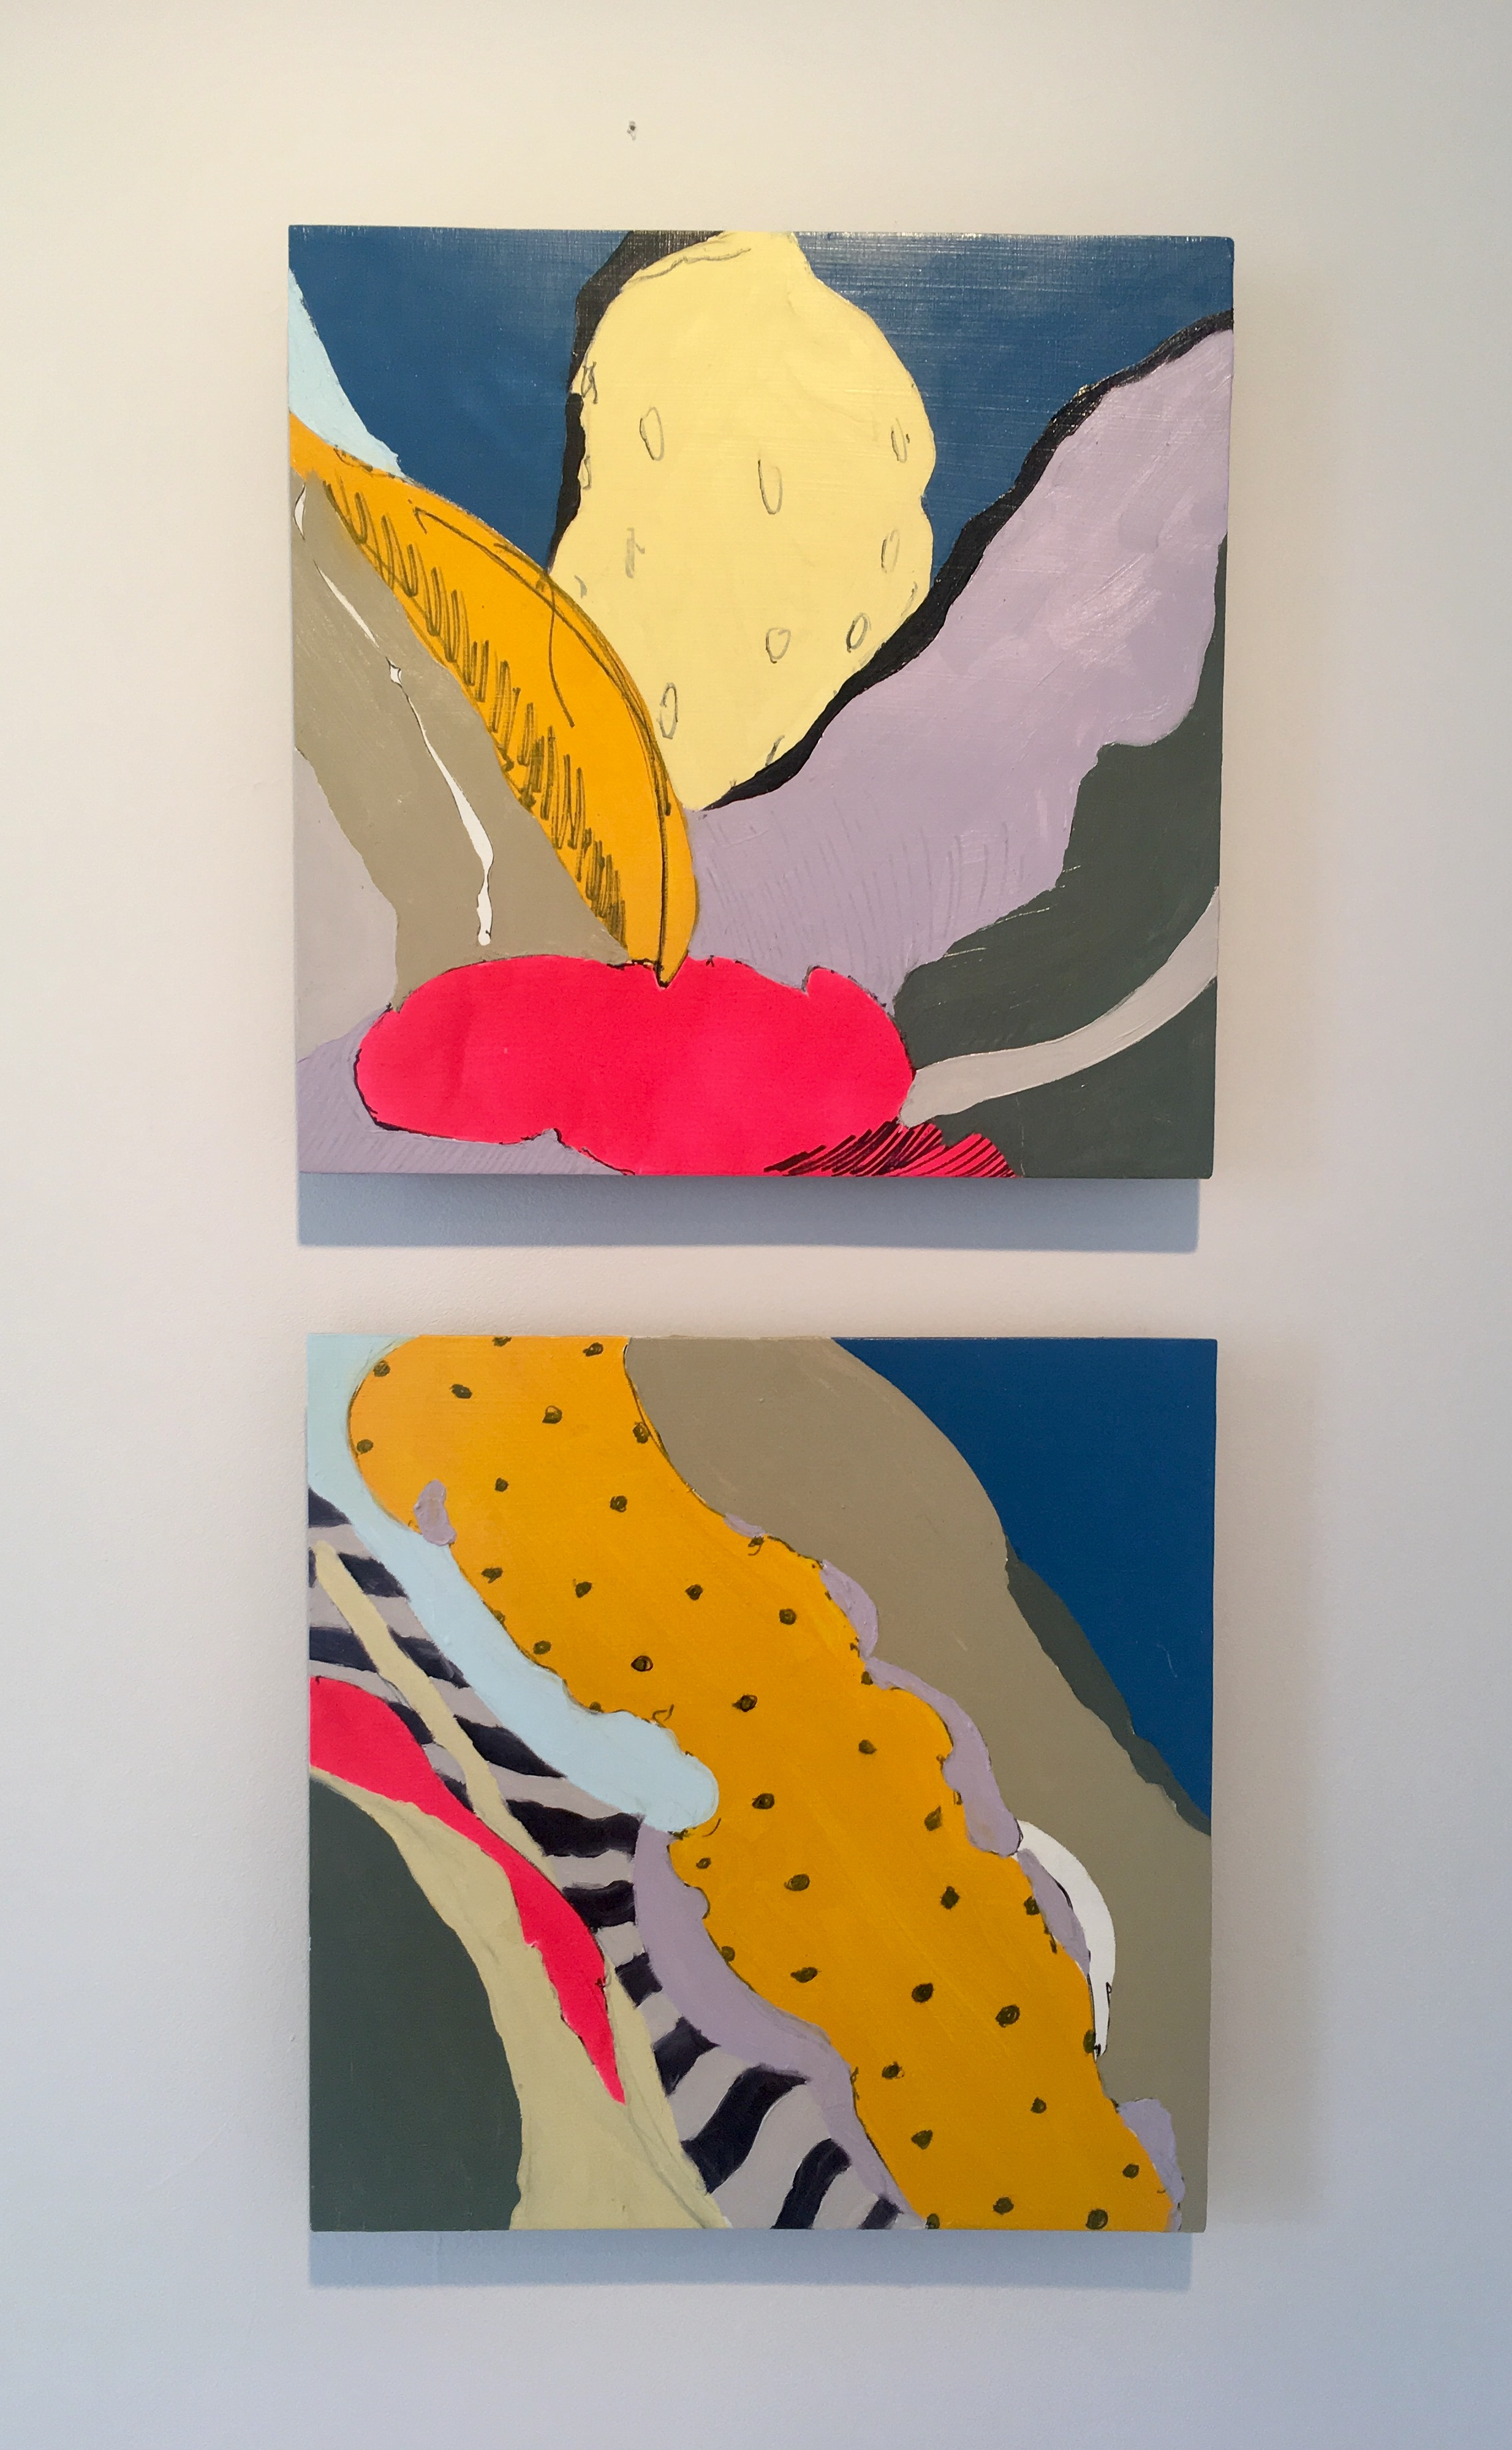 Untitled works